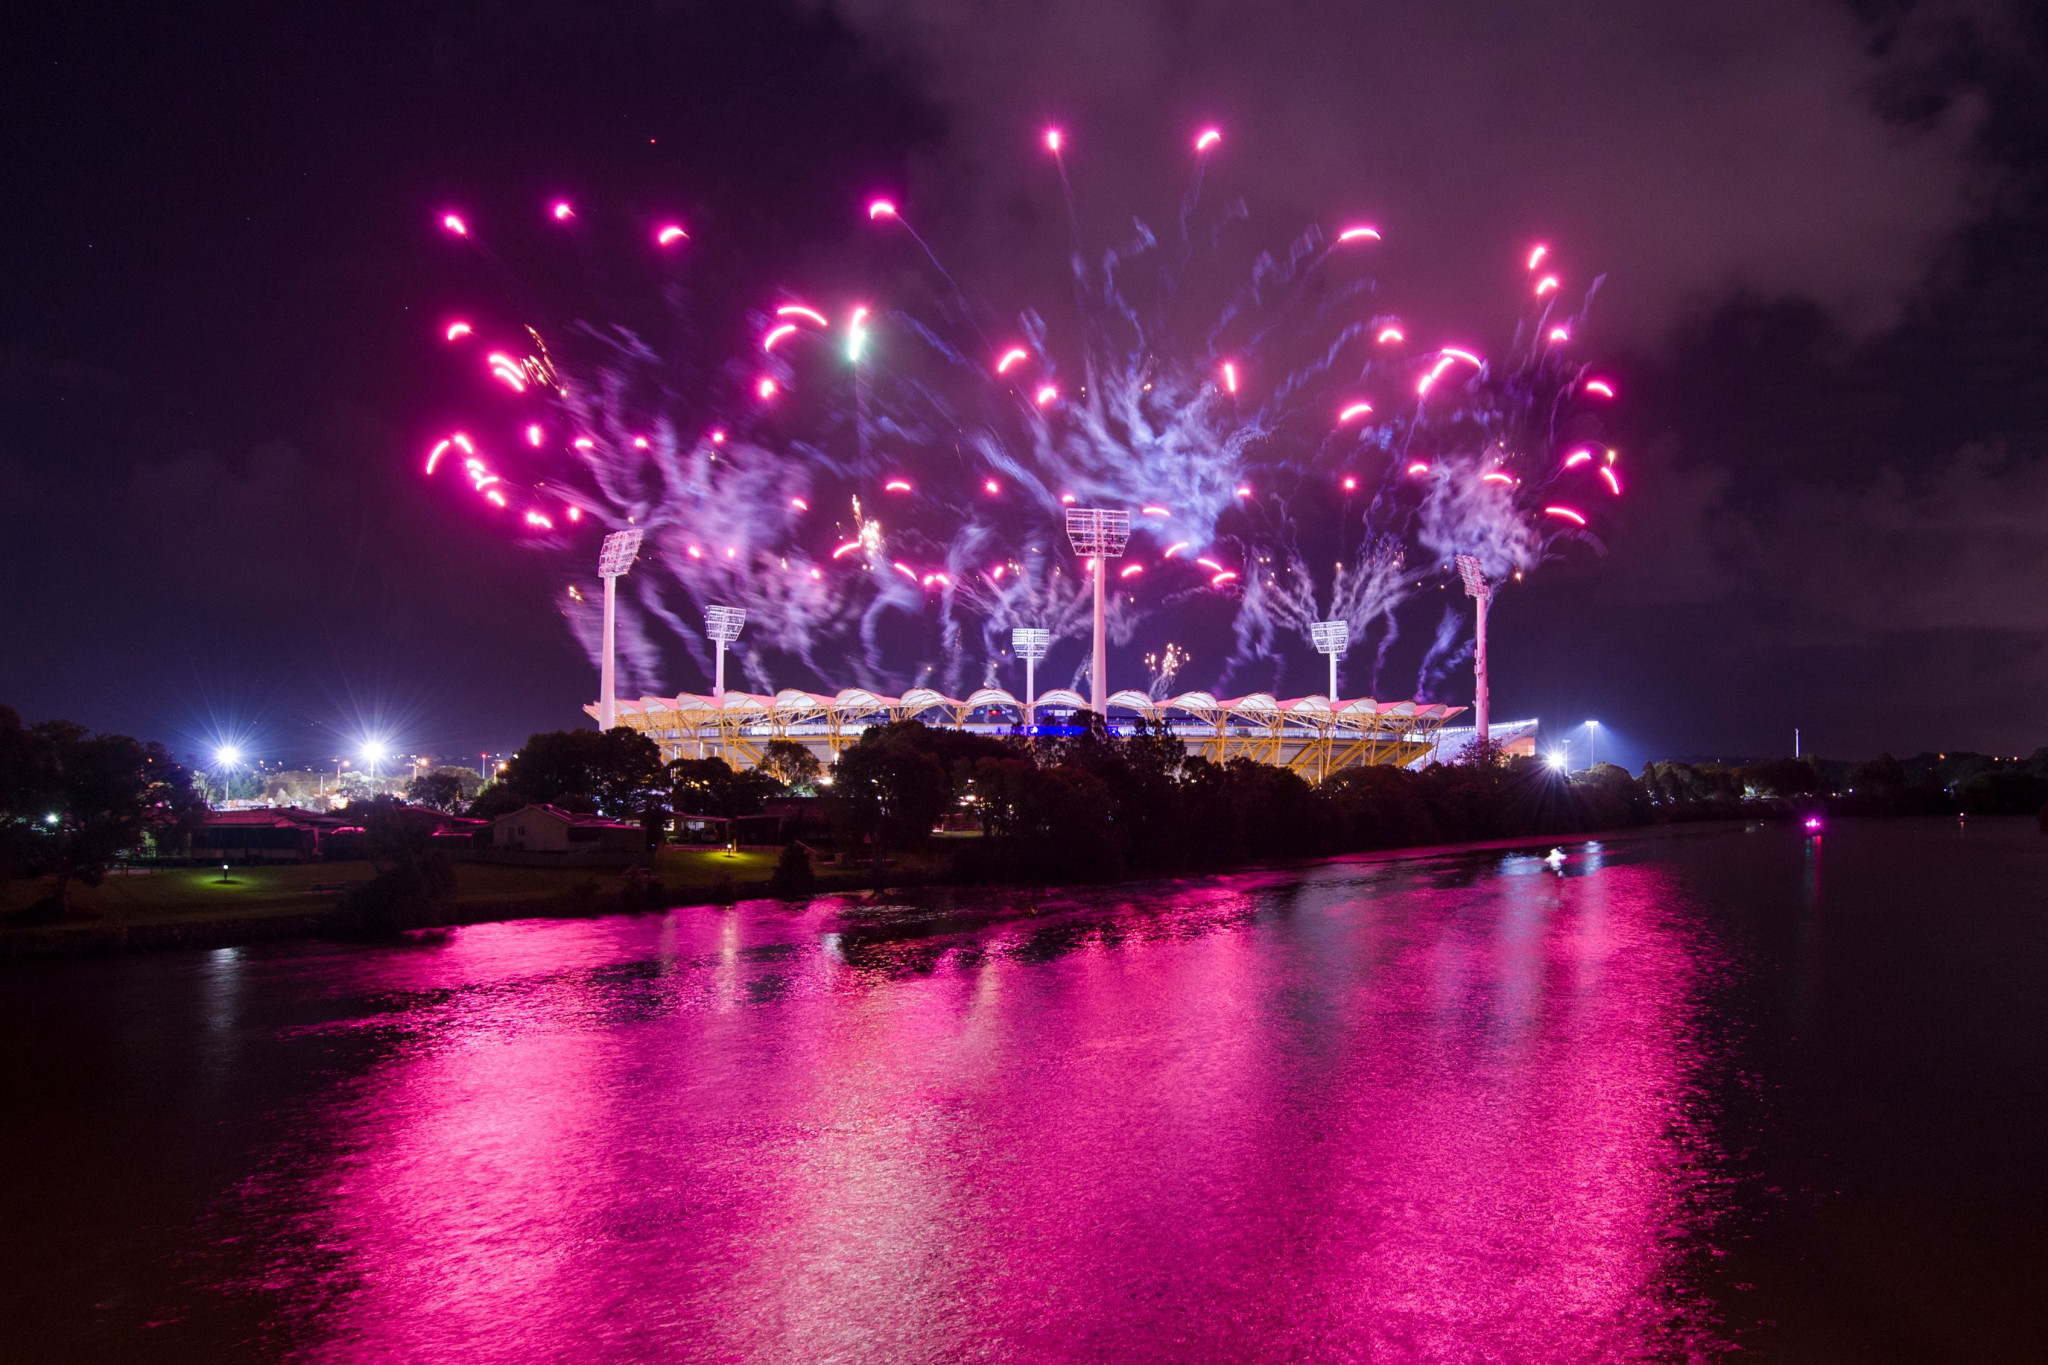 Fireworks explode in the air as Gold Coast 2018 was declared open ©Getty Images